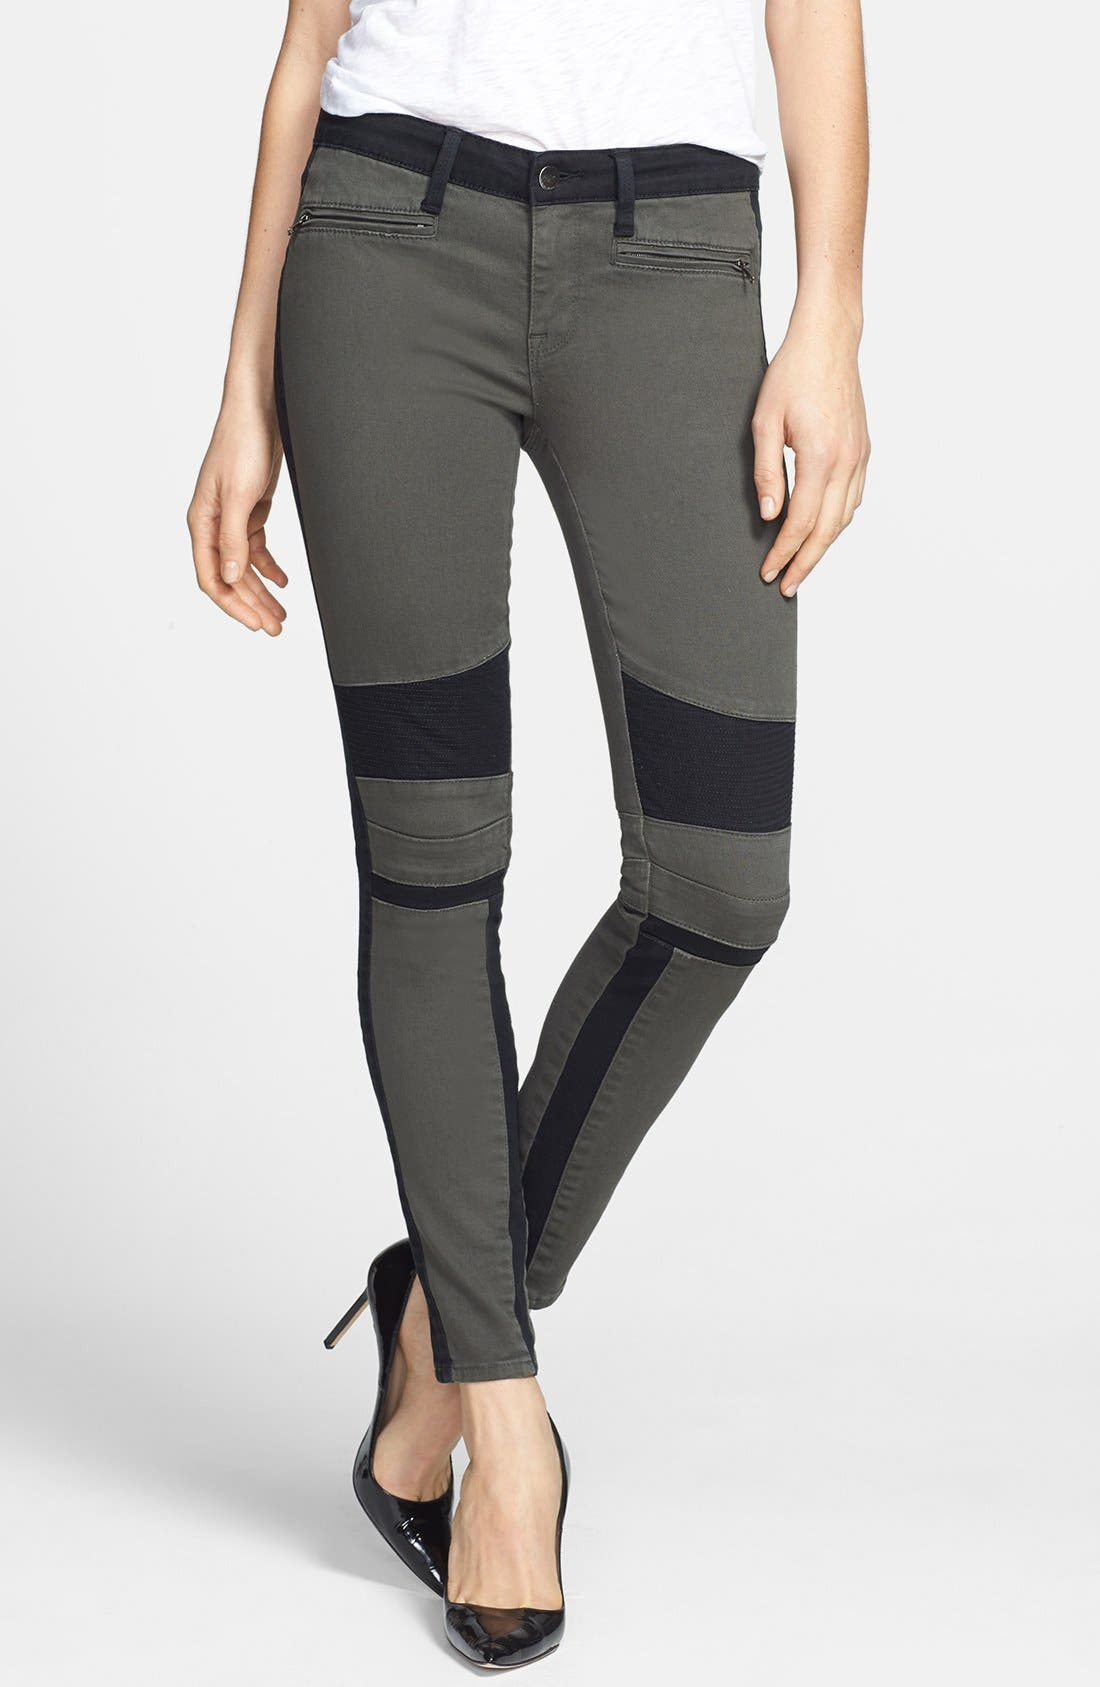 Alternate Image 1 Selected - Genetic 'Sadie' Two-Tone Moto Skinny Jeans (Chrome)